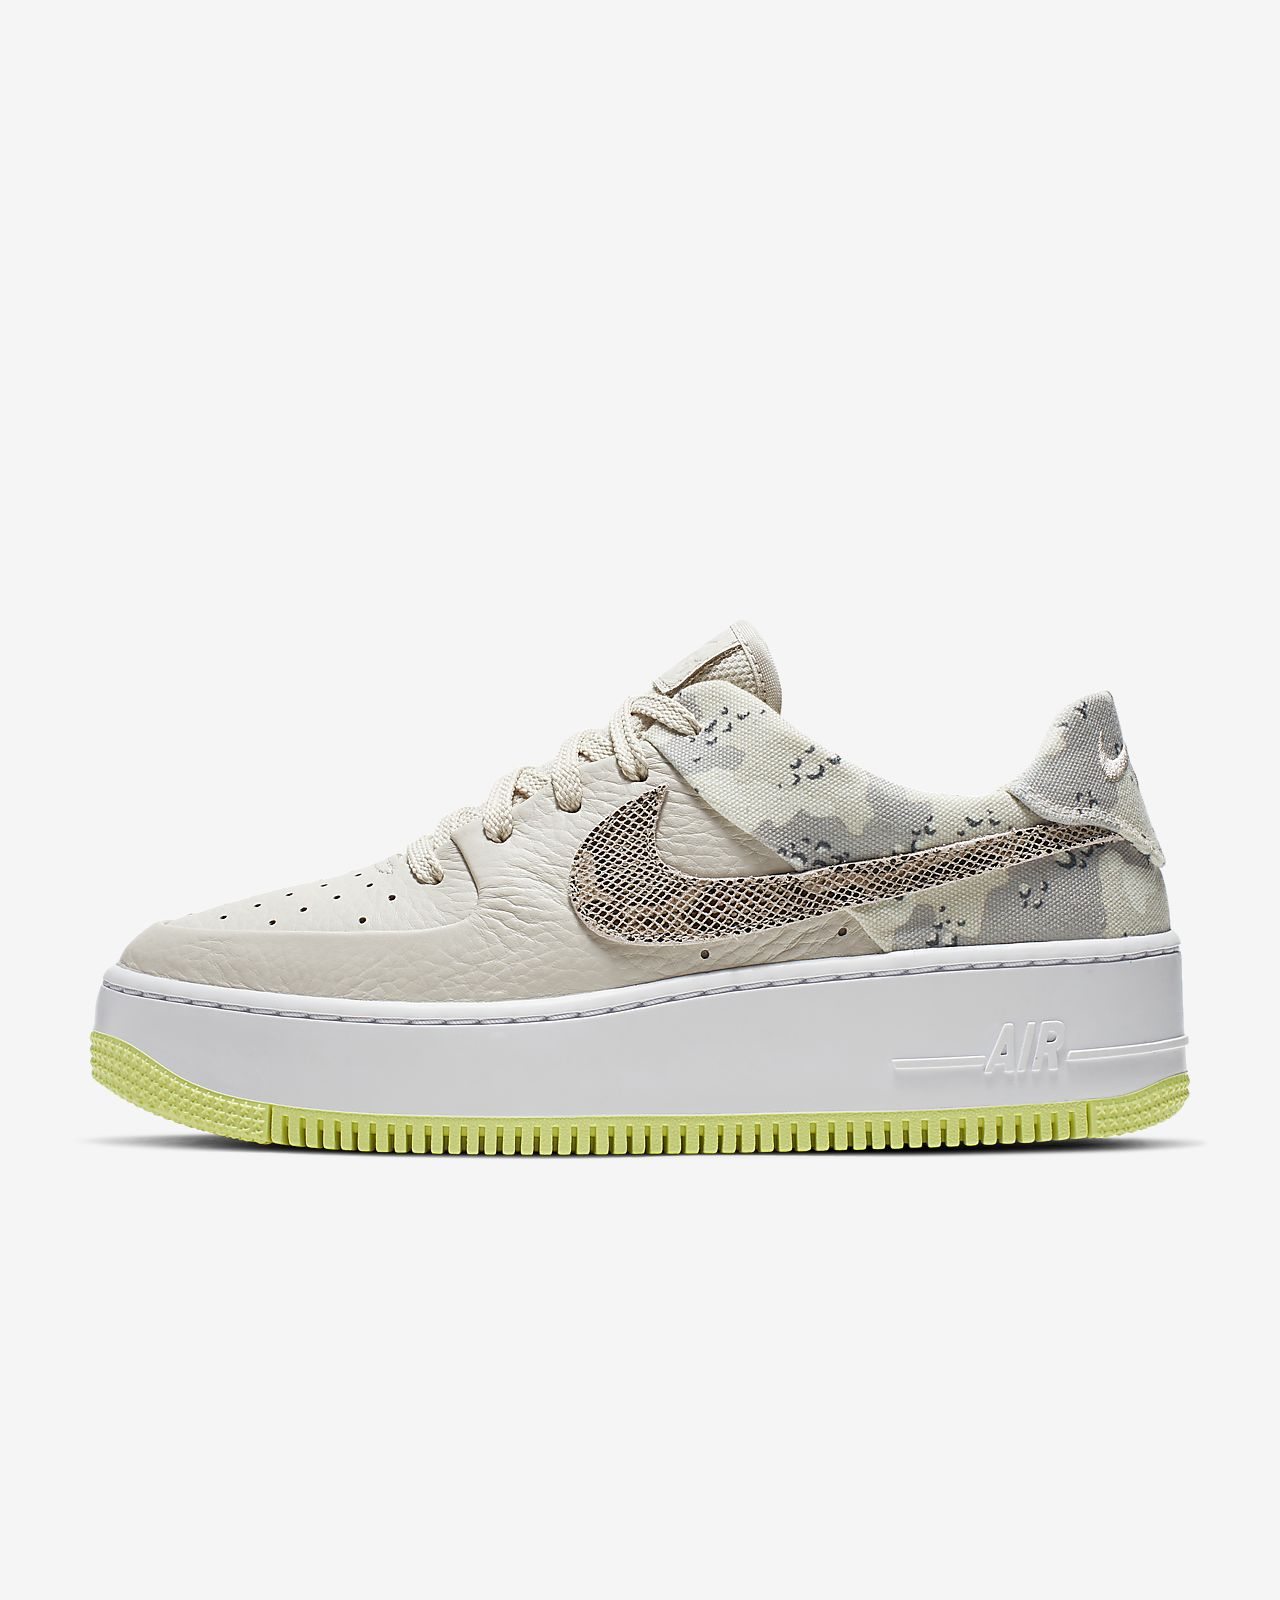 best sneakers c71af 56404 Nike Air Force 1 Sage Low Premium Camo Damenschuh. Nike.com DE